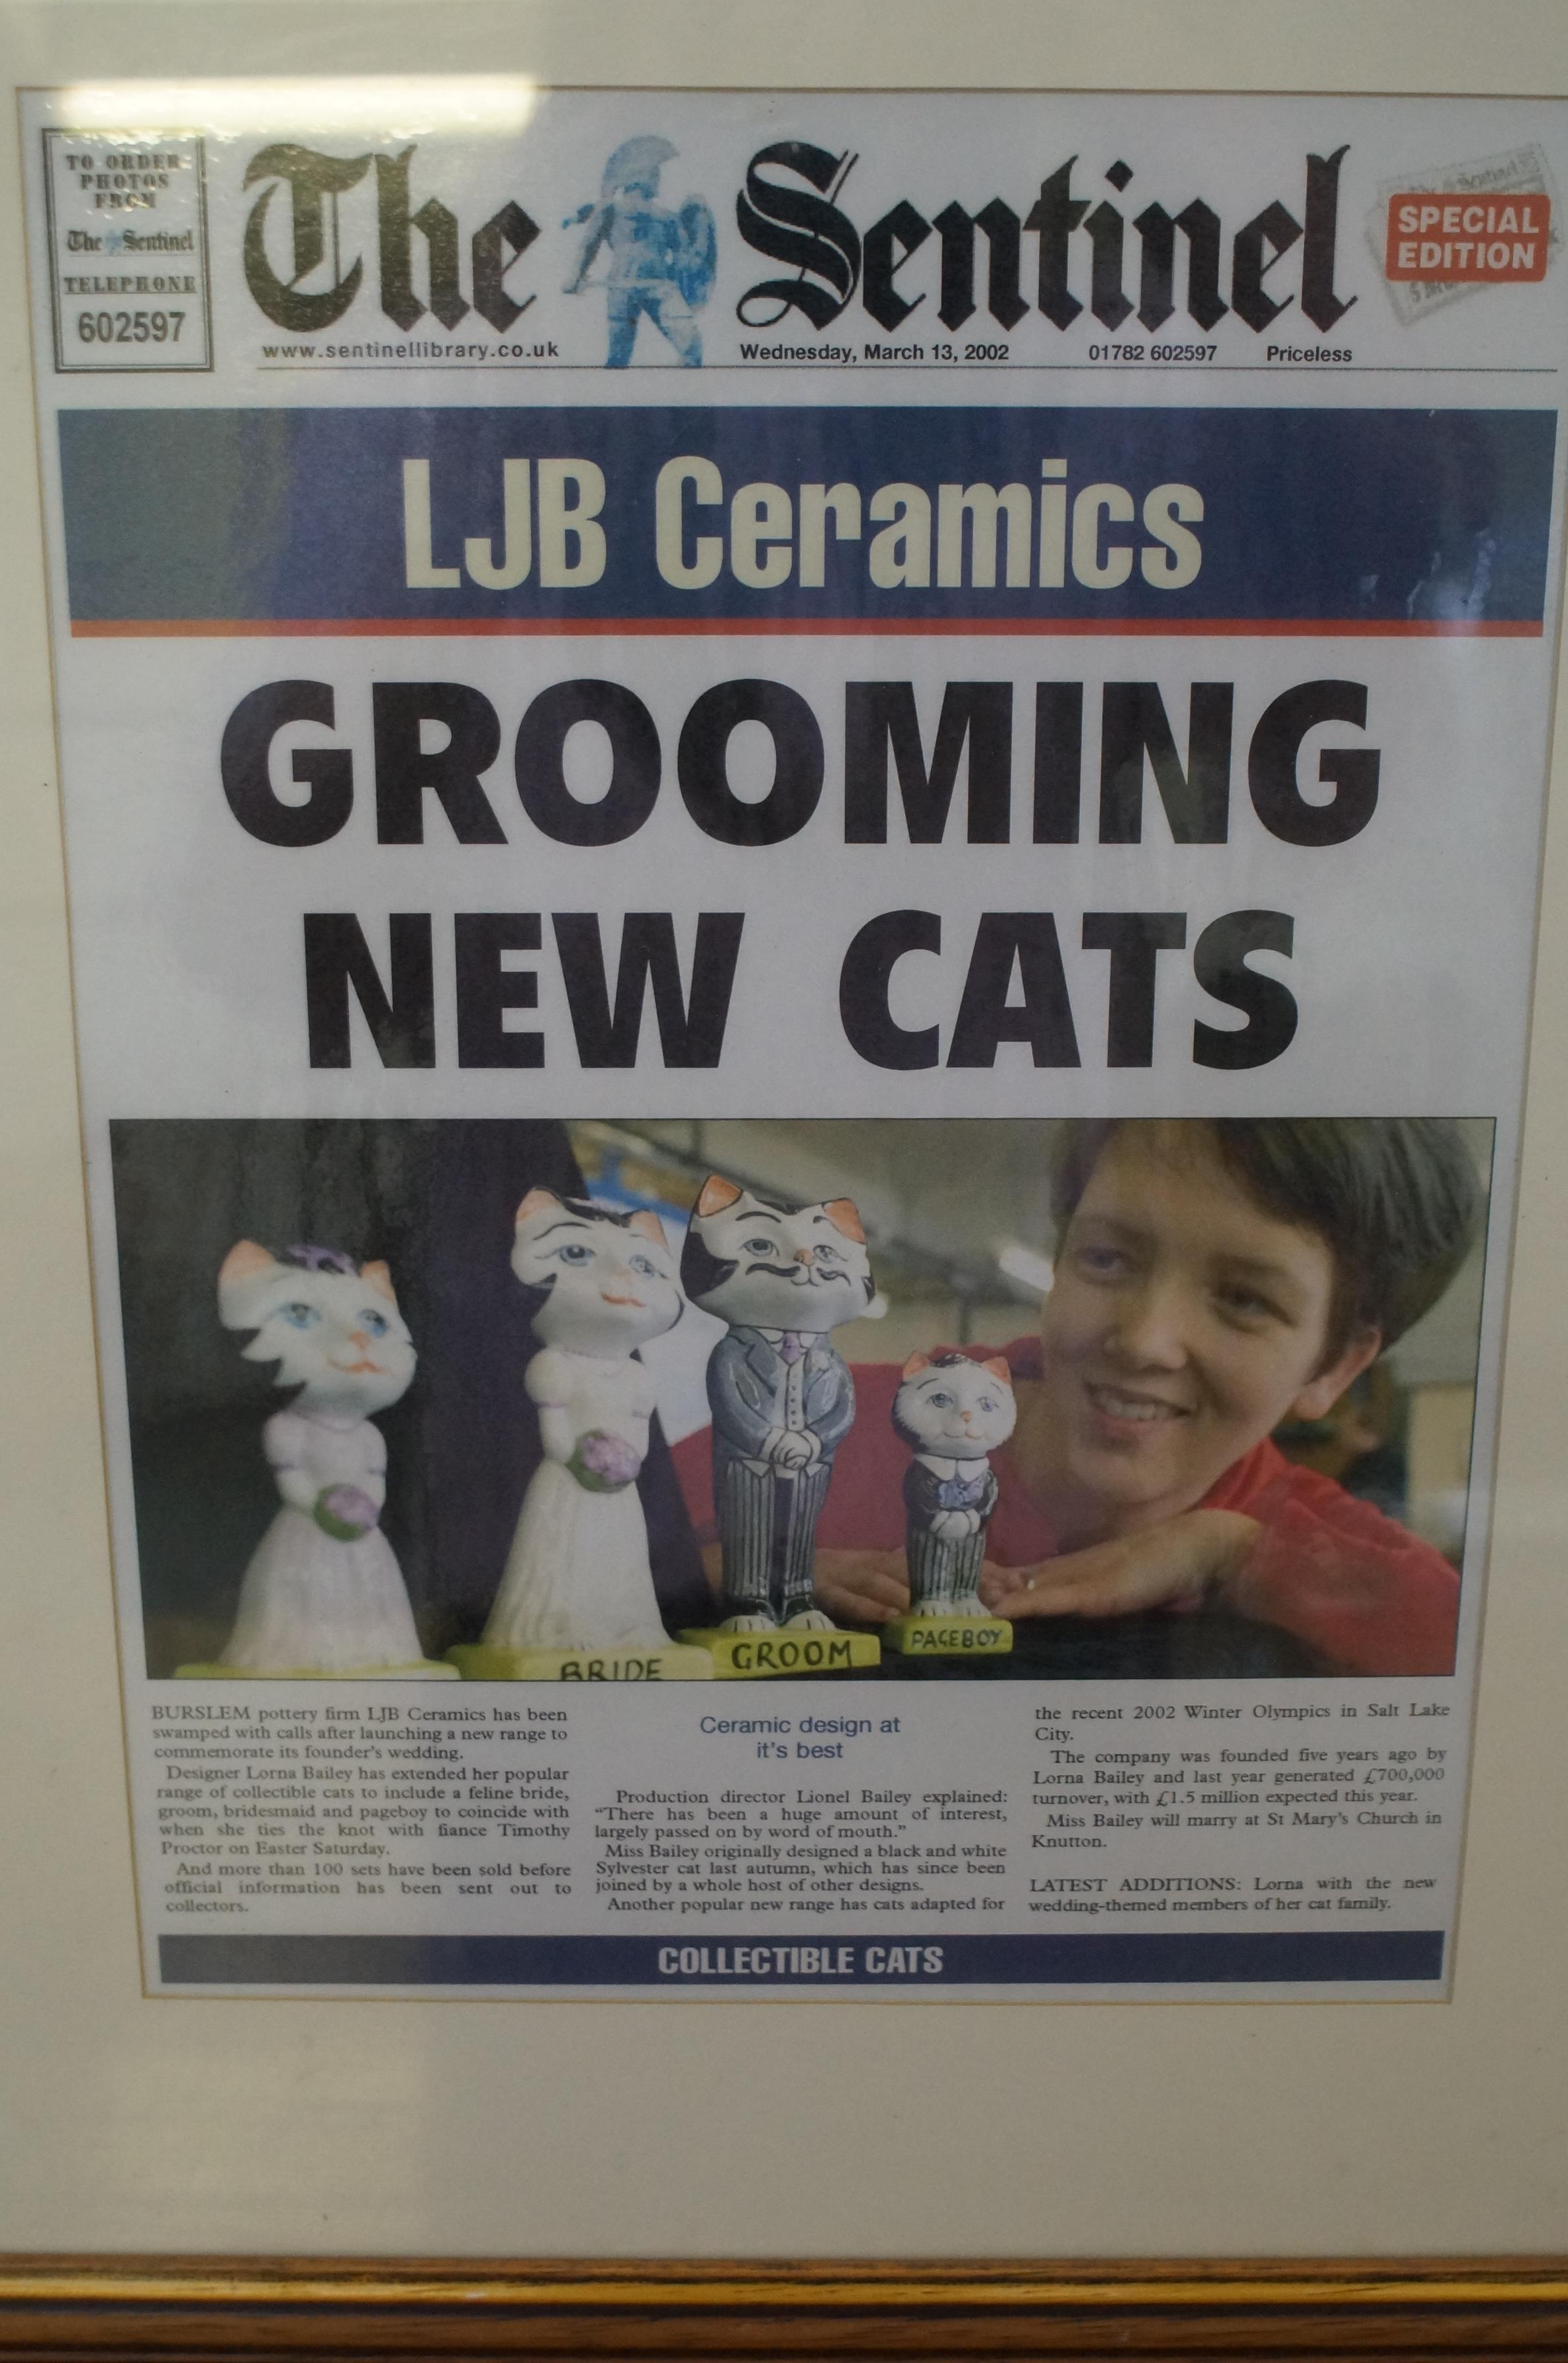 Lorna Bailey Sentinel Framed Front Page - Image 2 of 3